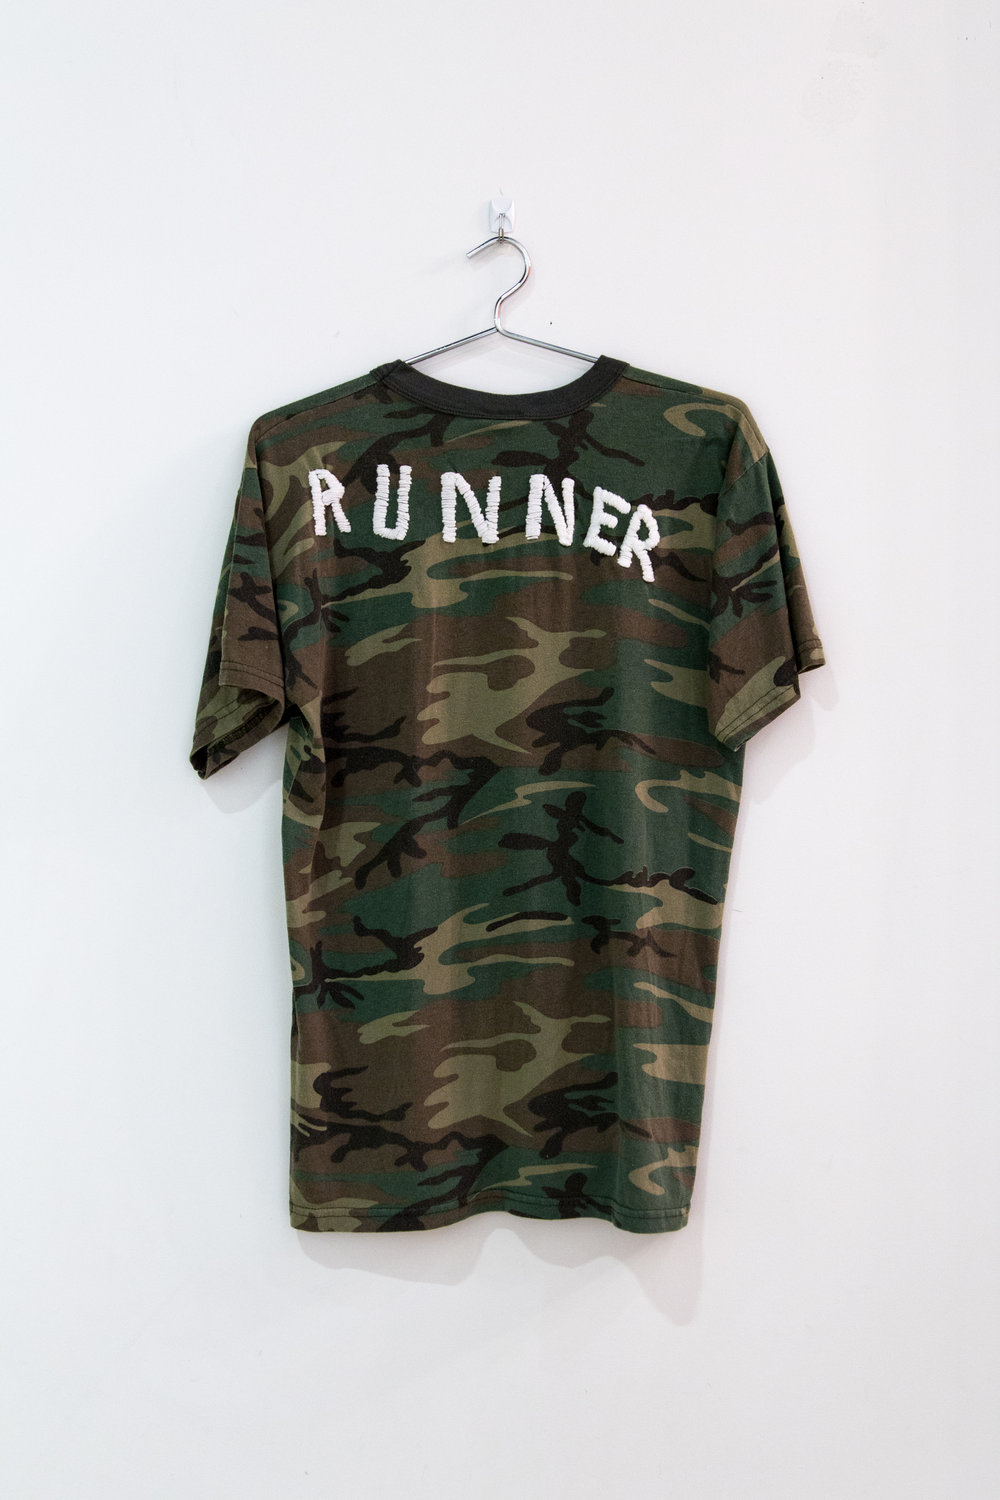 "Runner,  2017, embroidered t-shirt, 18"" x 24"""